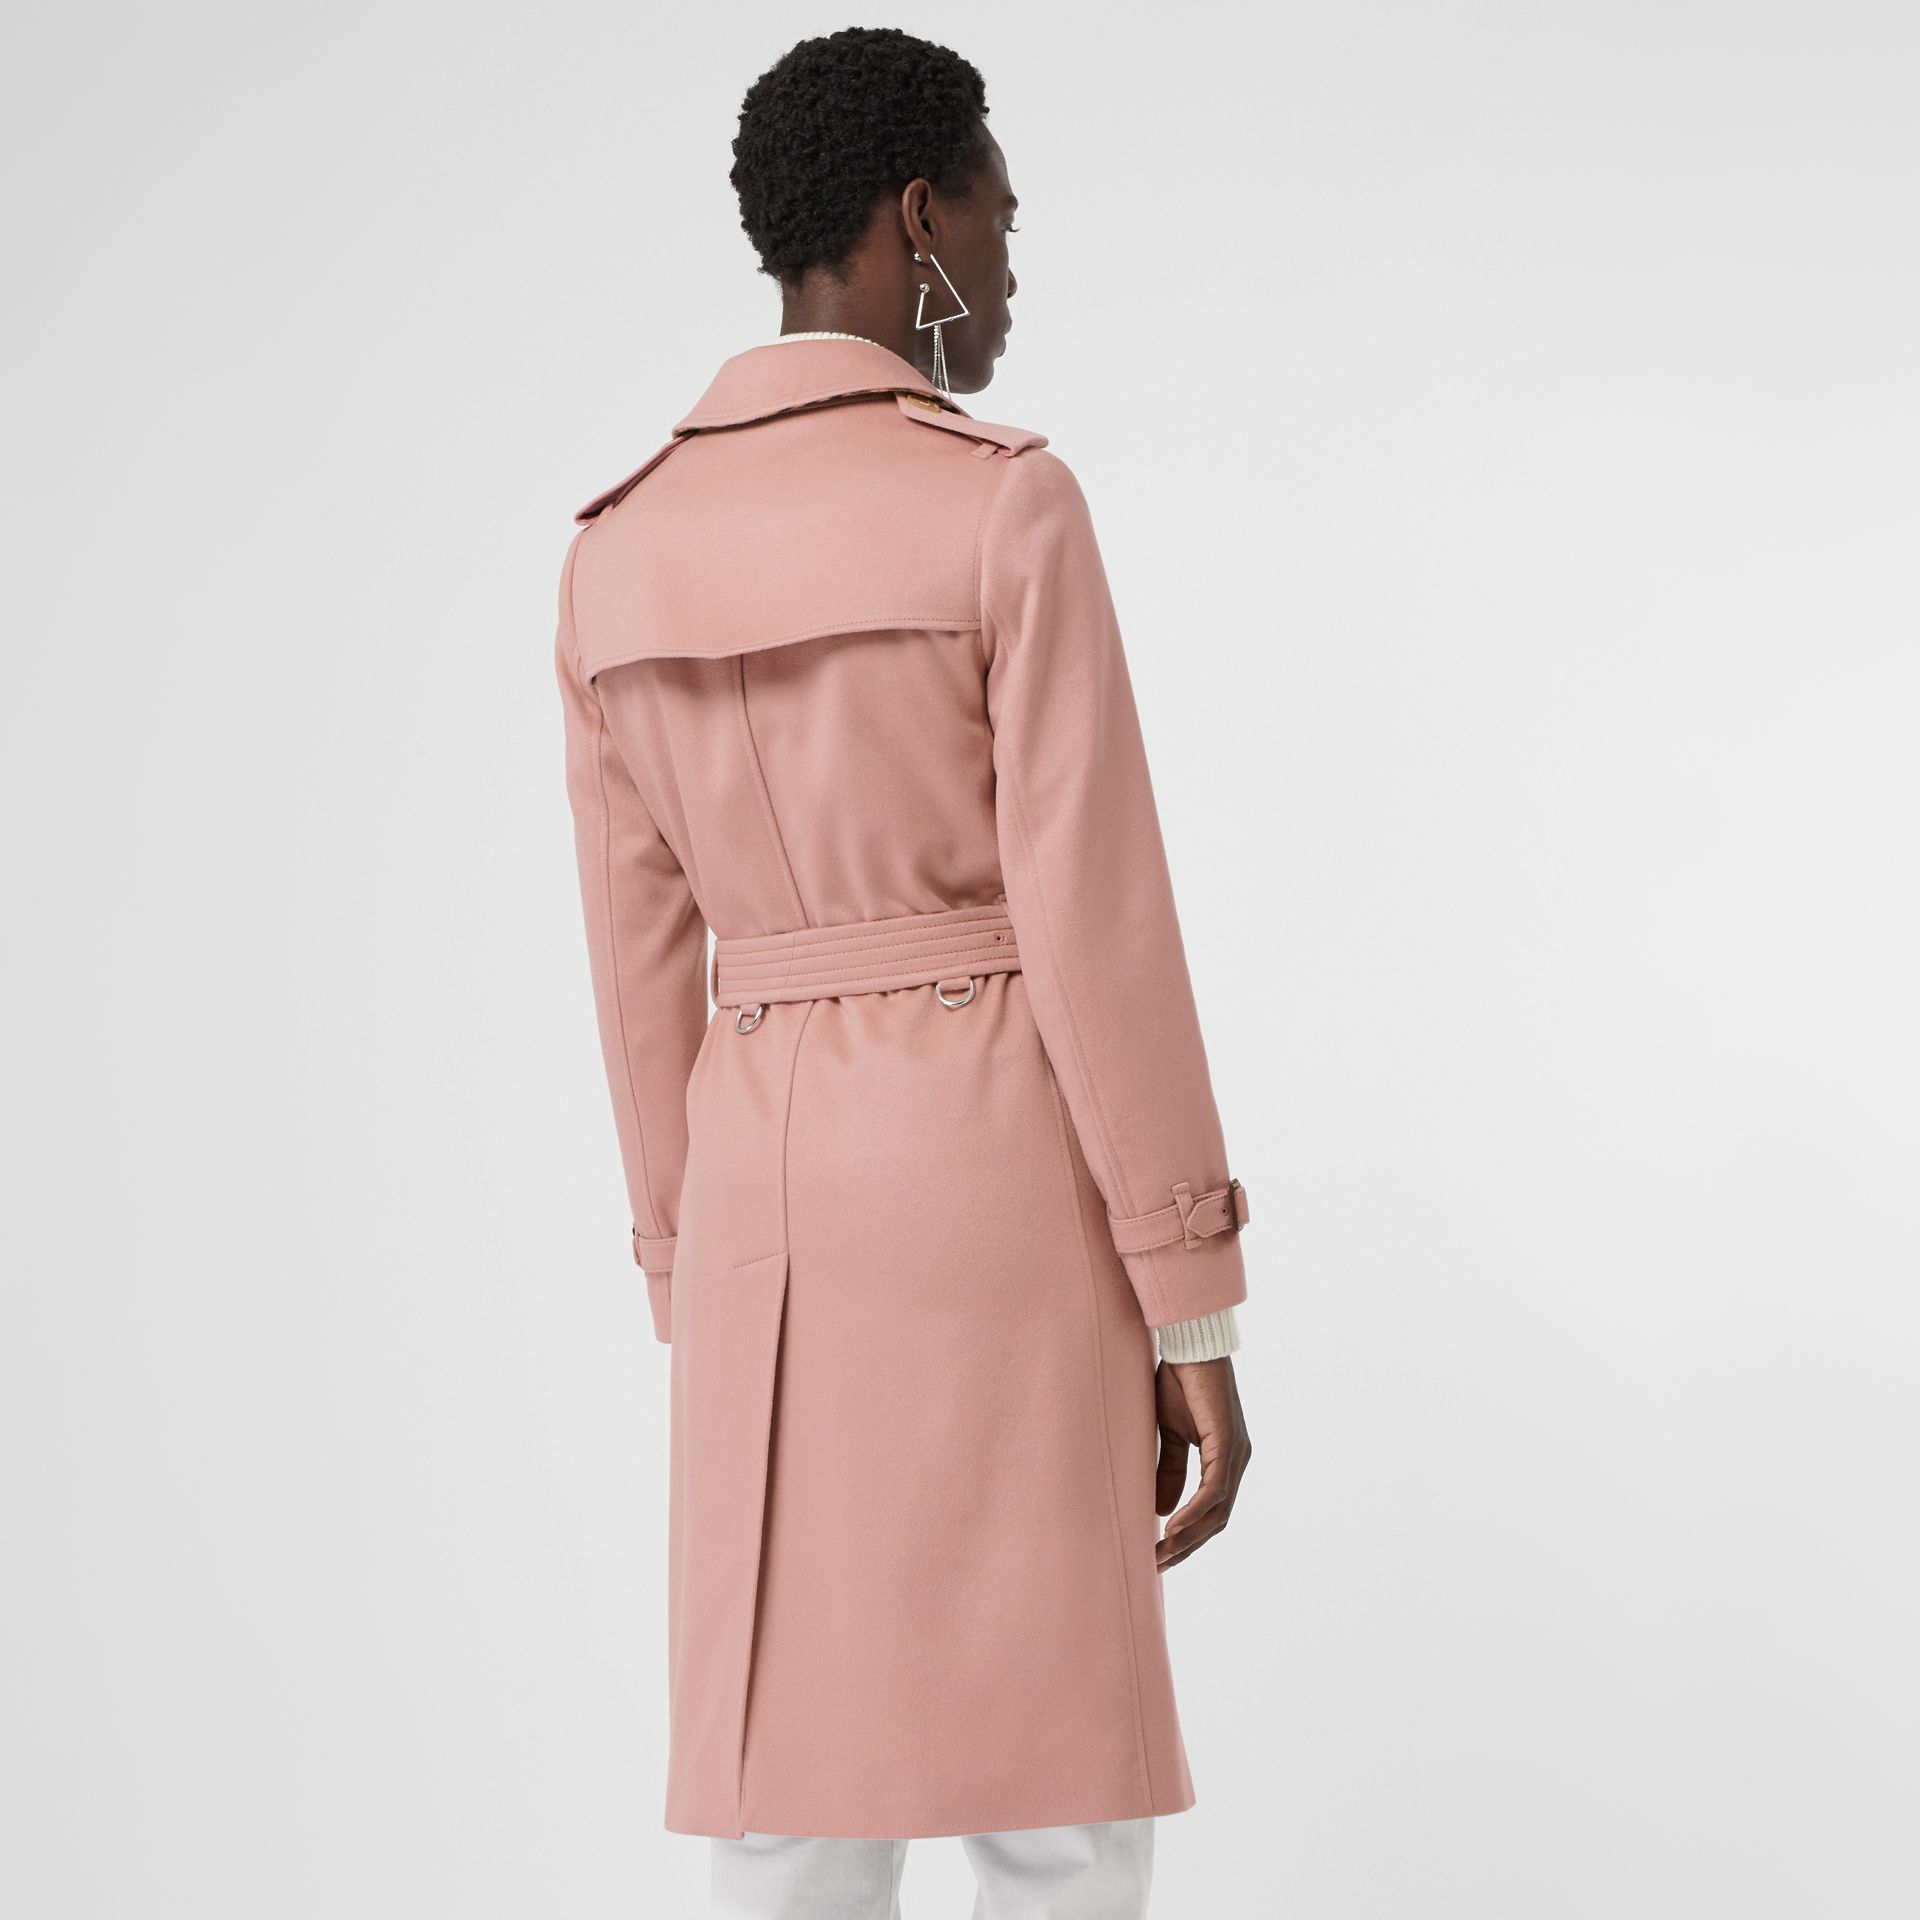 Cashmere Trench Coat in Chalk Pink - Women | Burberry United States - gallery image 2